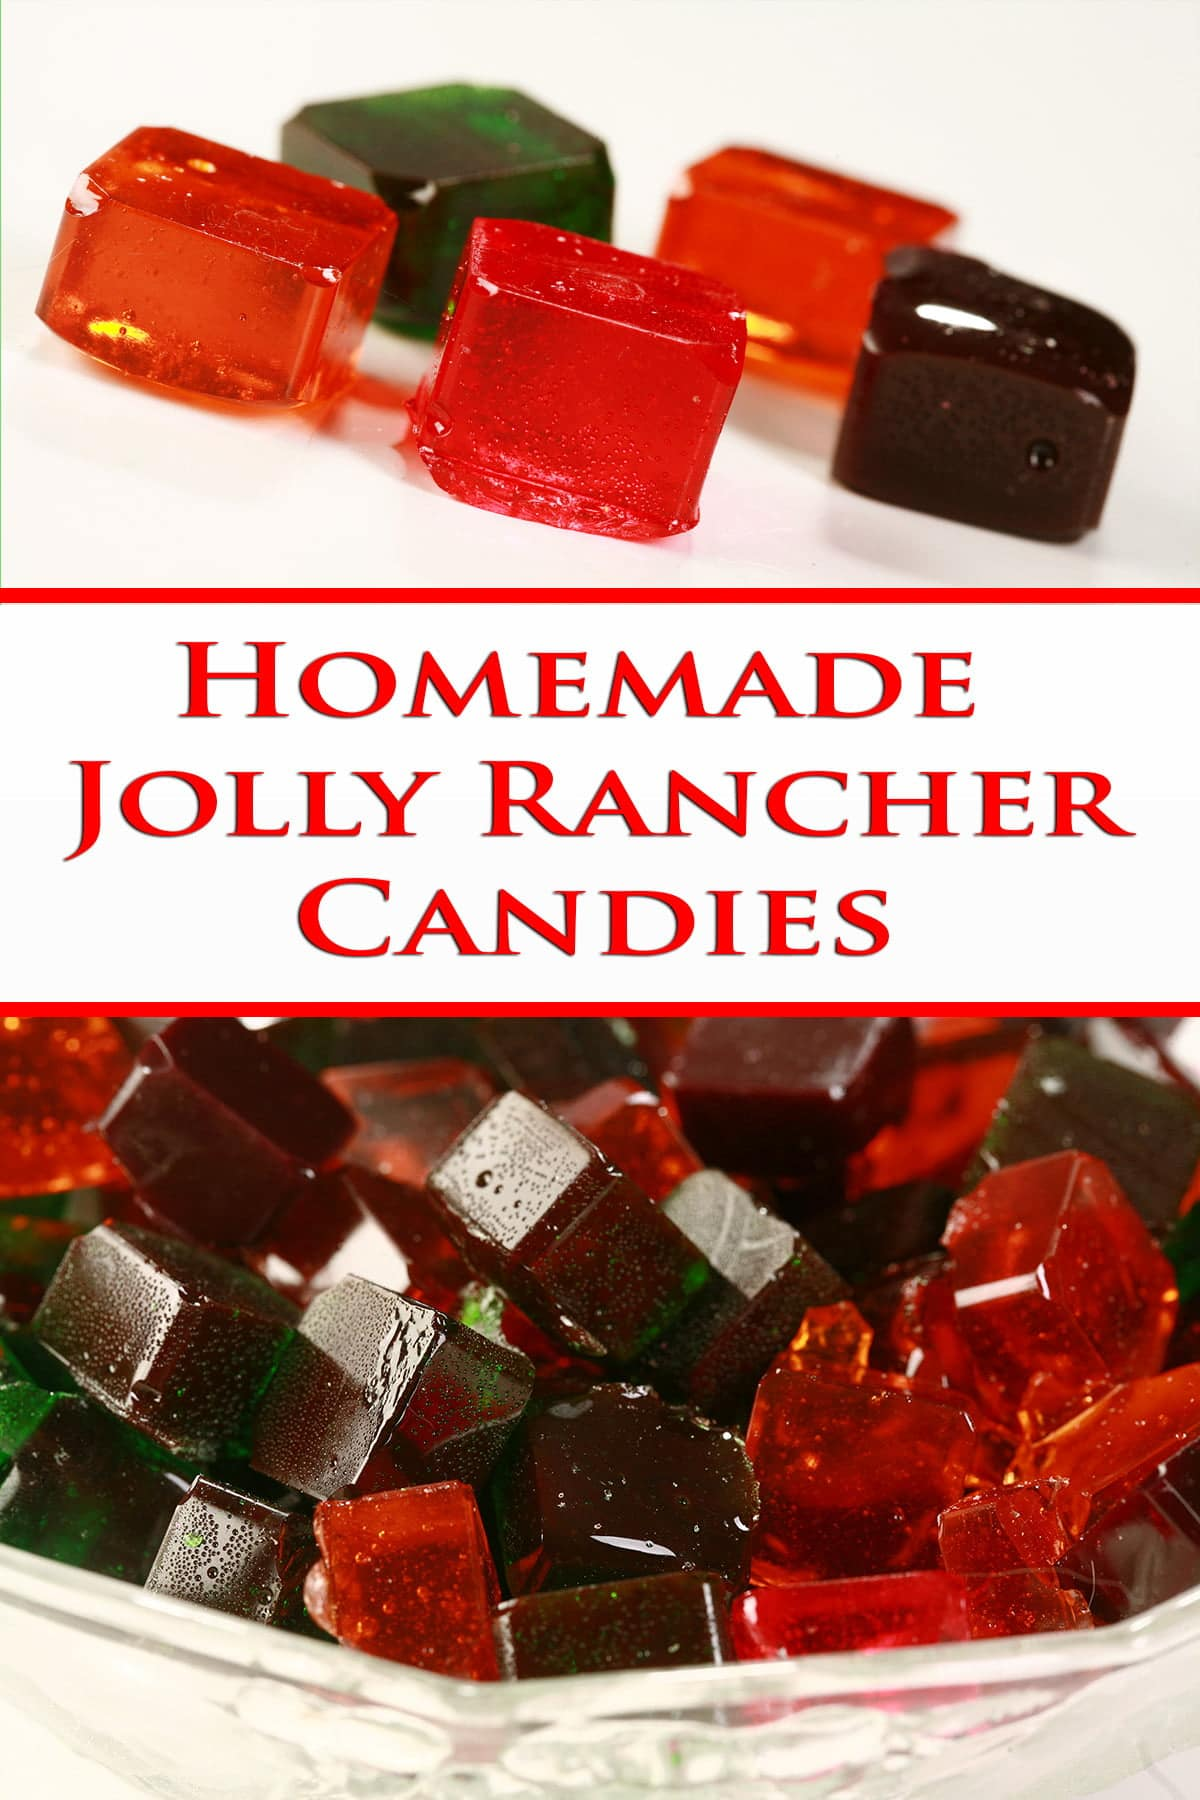 A two part compilation image. The top photo shows 5 squares of colourful hard candy, and the bottom image shows a bowl of the candies. Text saying Homemade Jolly Rancher Candies separates the two images..